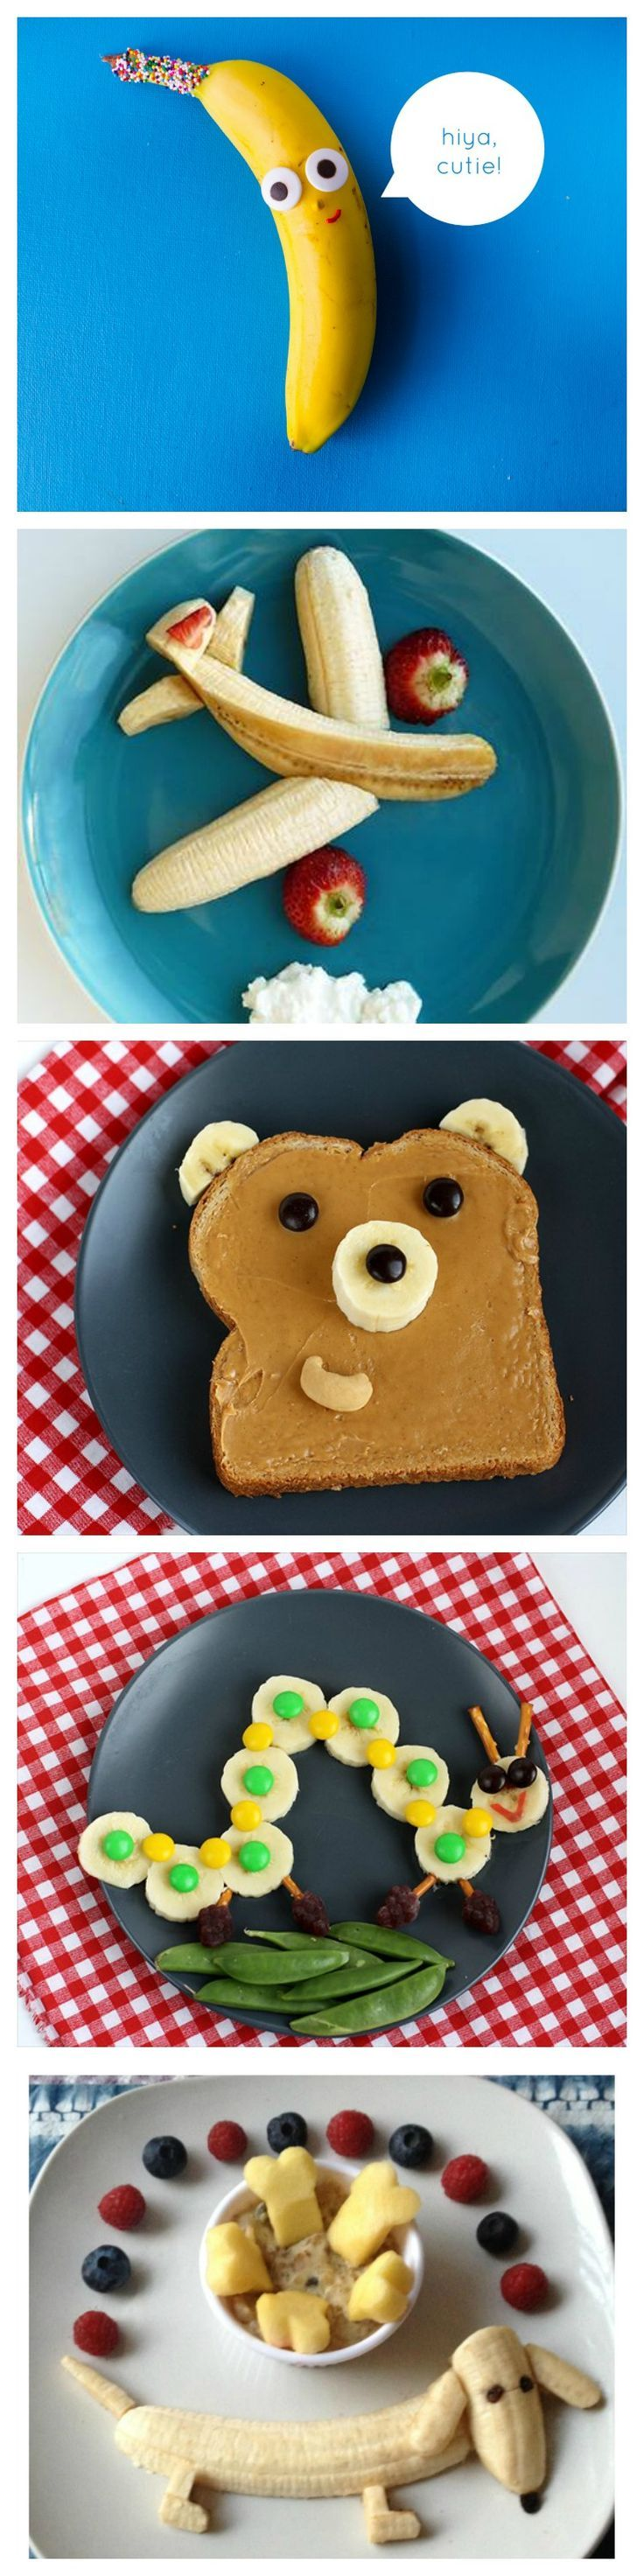 These are some great banana snack ideas for your kids!